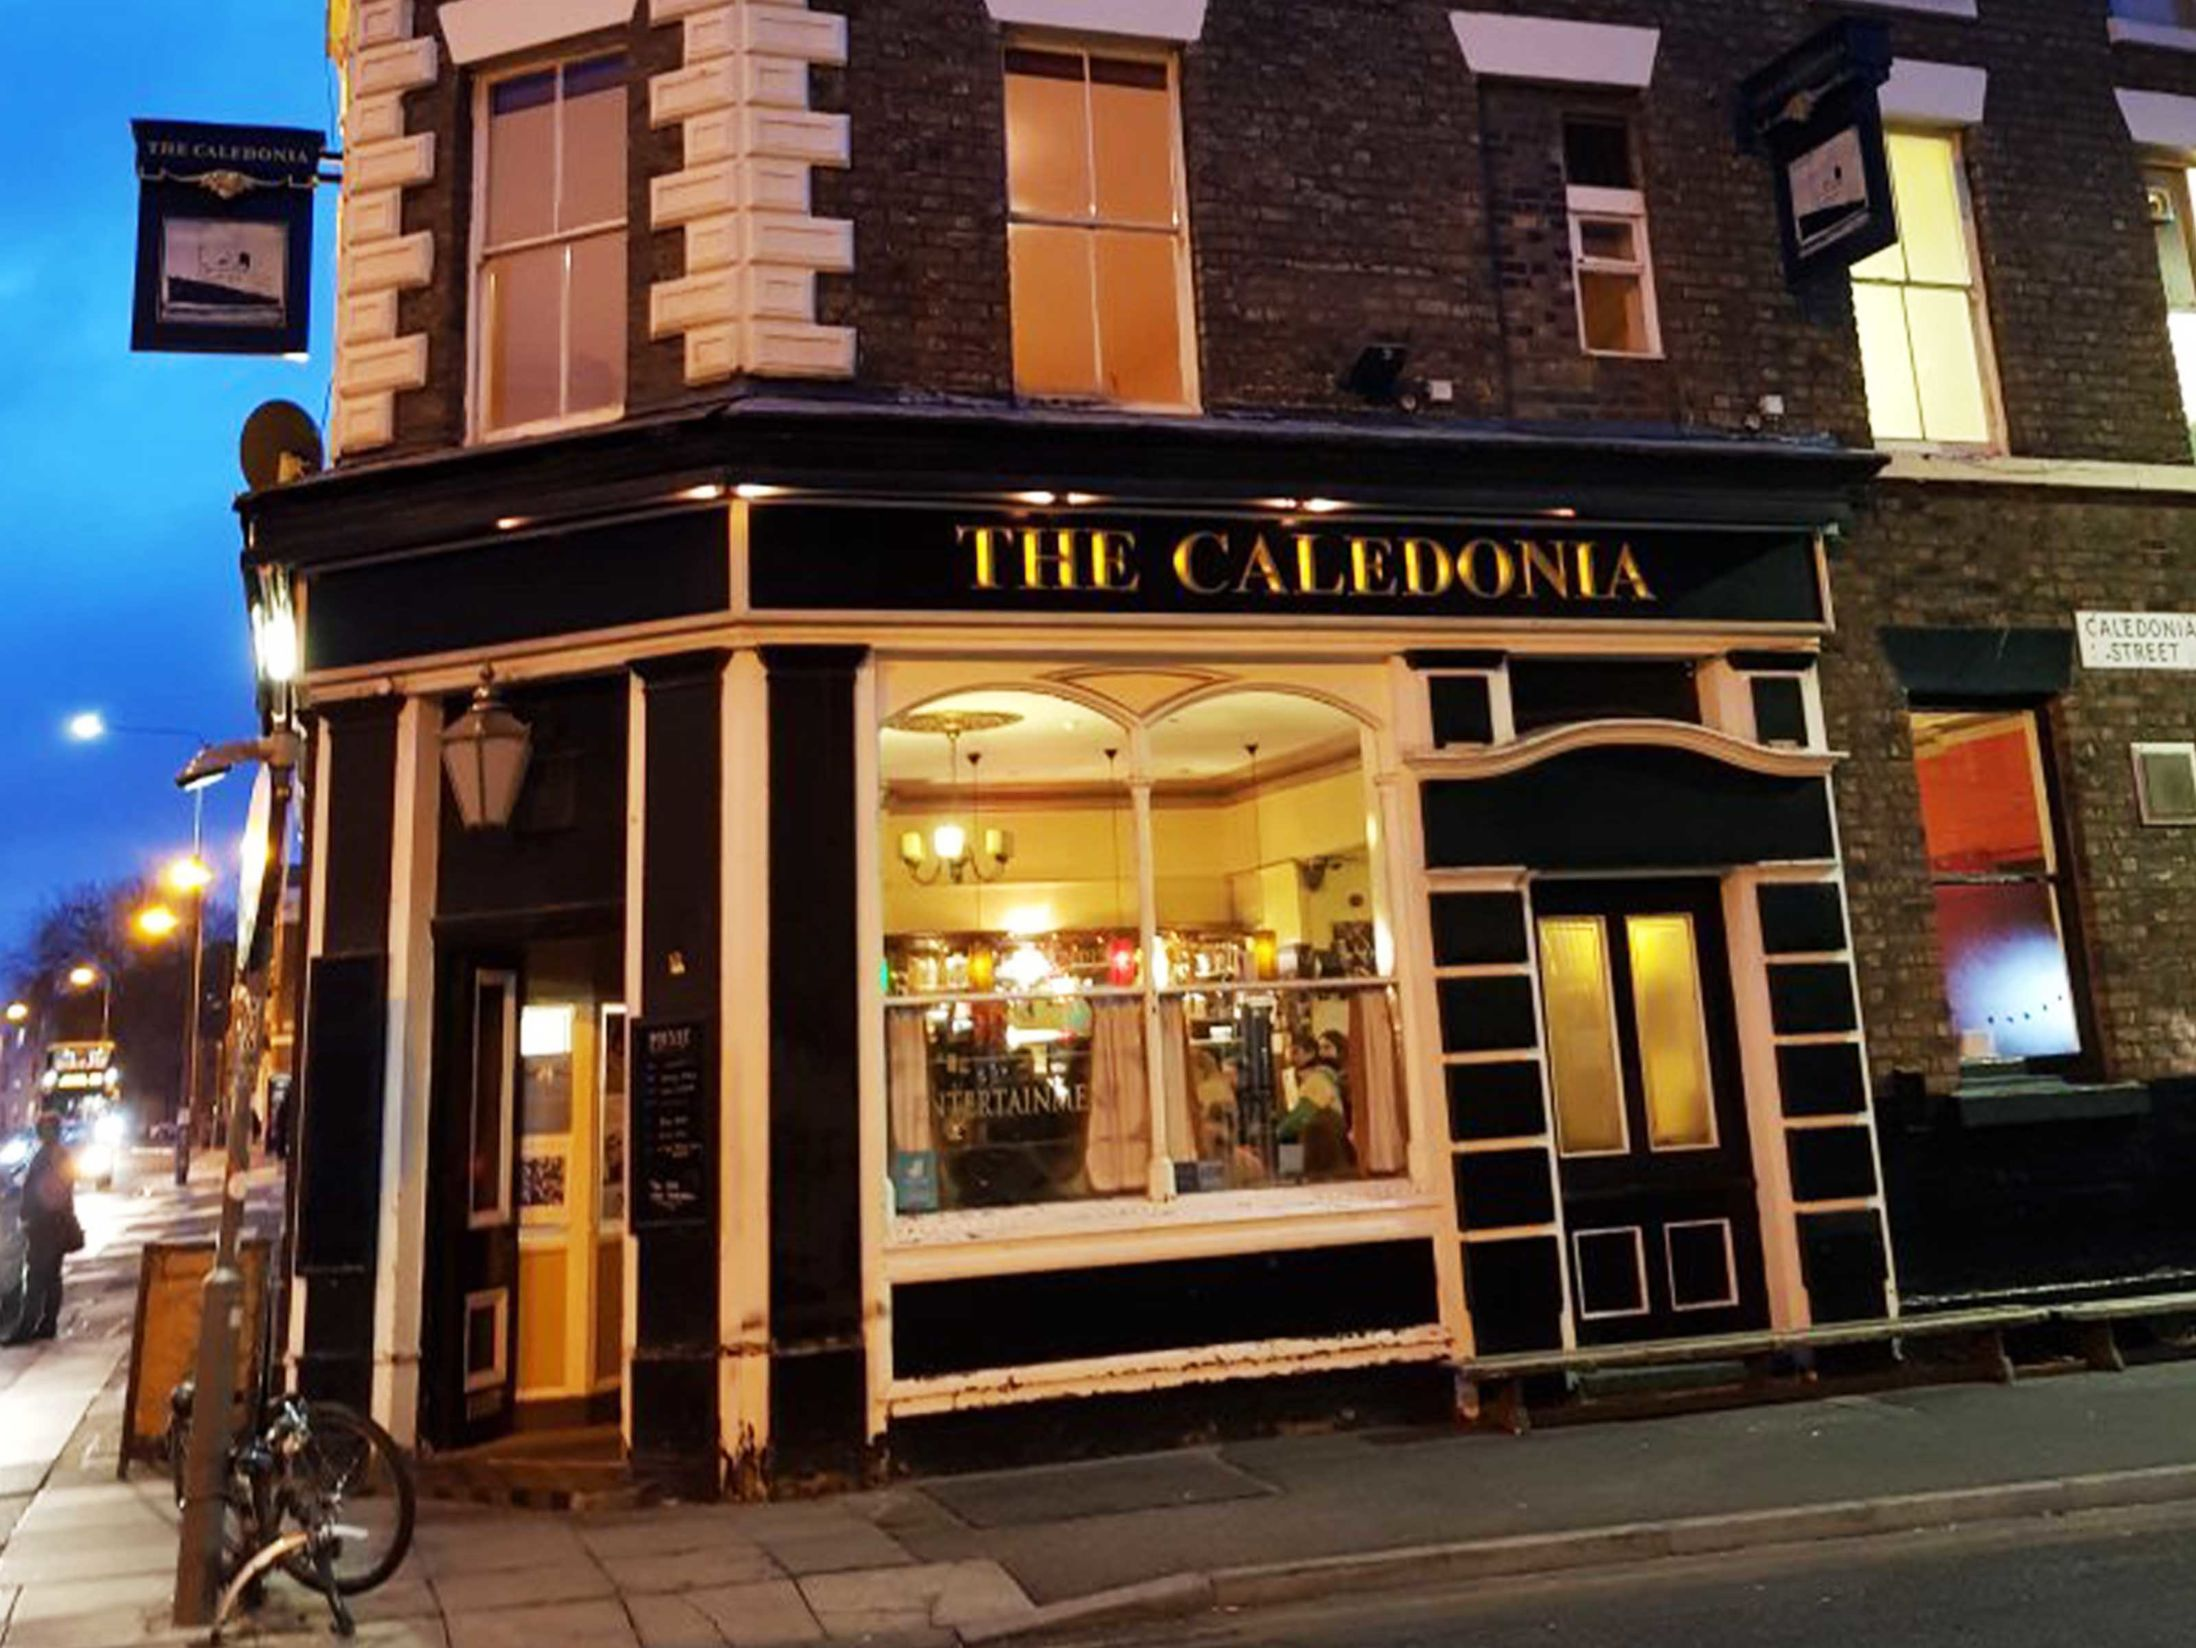 The 13 Best Pubs in Liverpool - The Caledonia